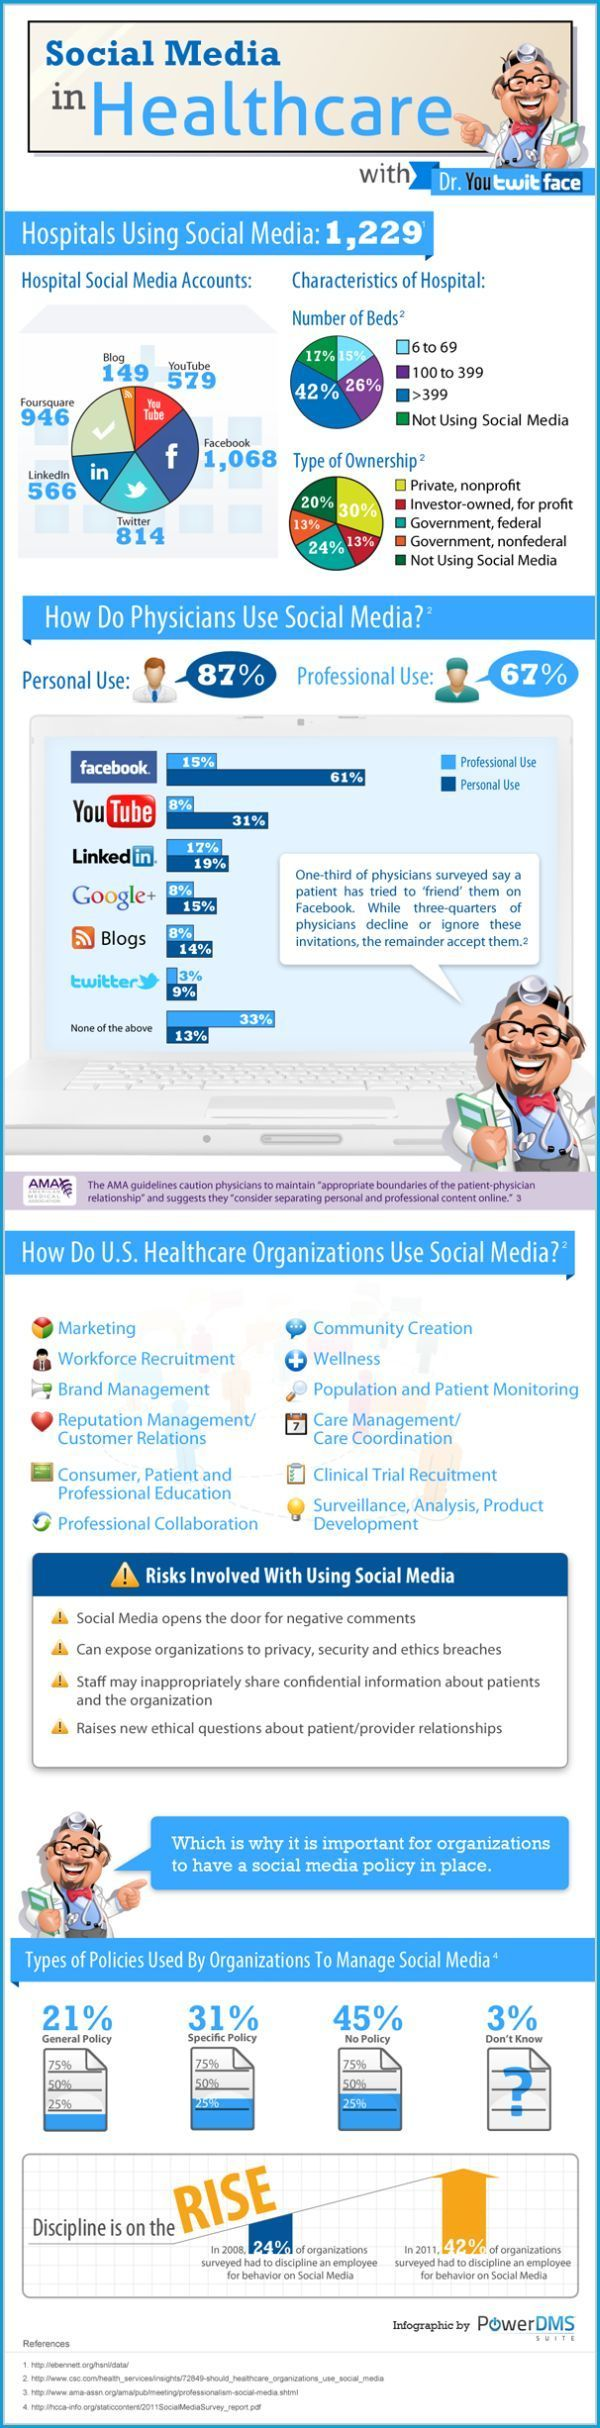 Great stats about healthcare social media